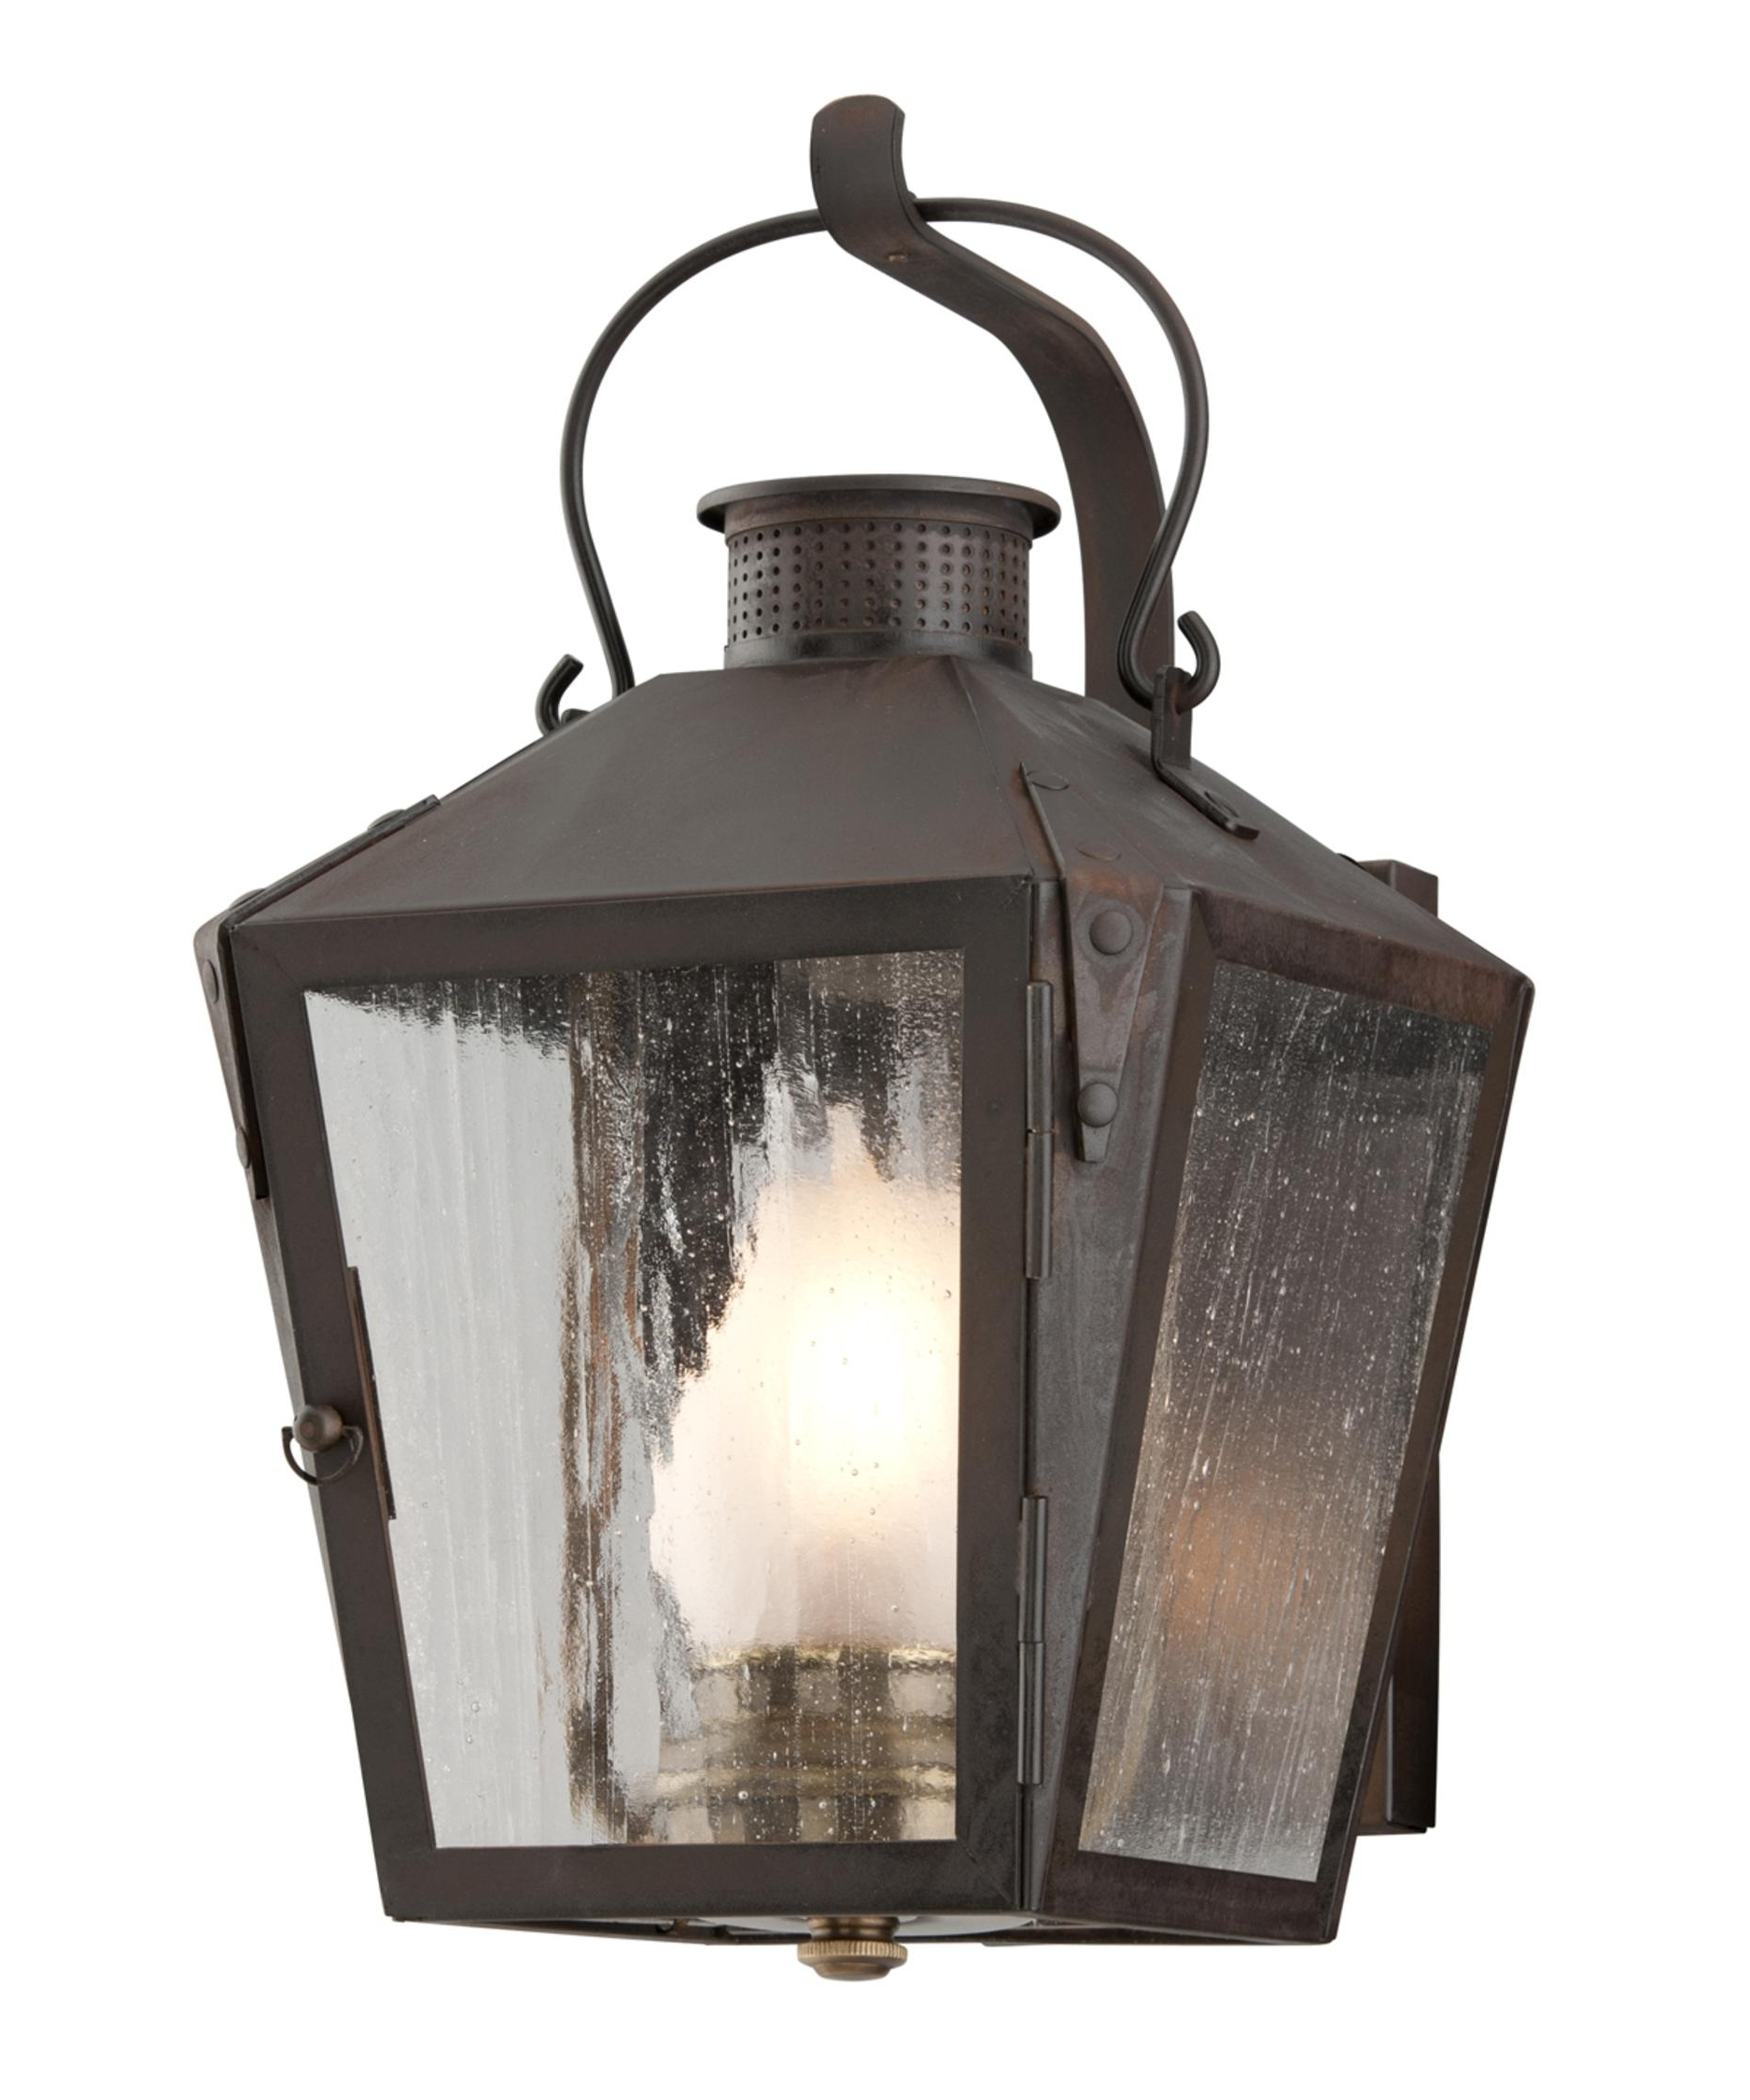 Nantucket Outdoor Lanterns Intended For Trendy Troy Lighting B3761 Nantucket 8 Inch Wide 1 Light Outdoor Wall Light (View 12 of 20)